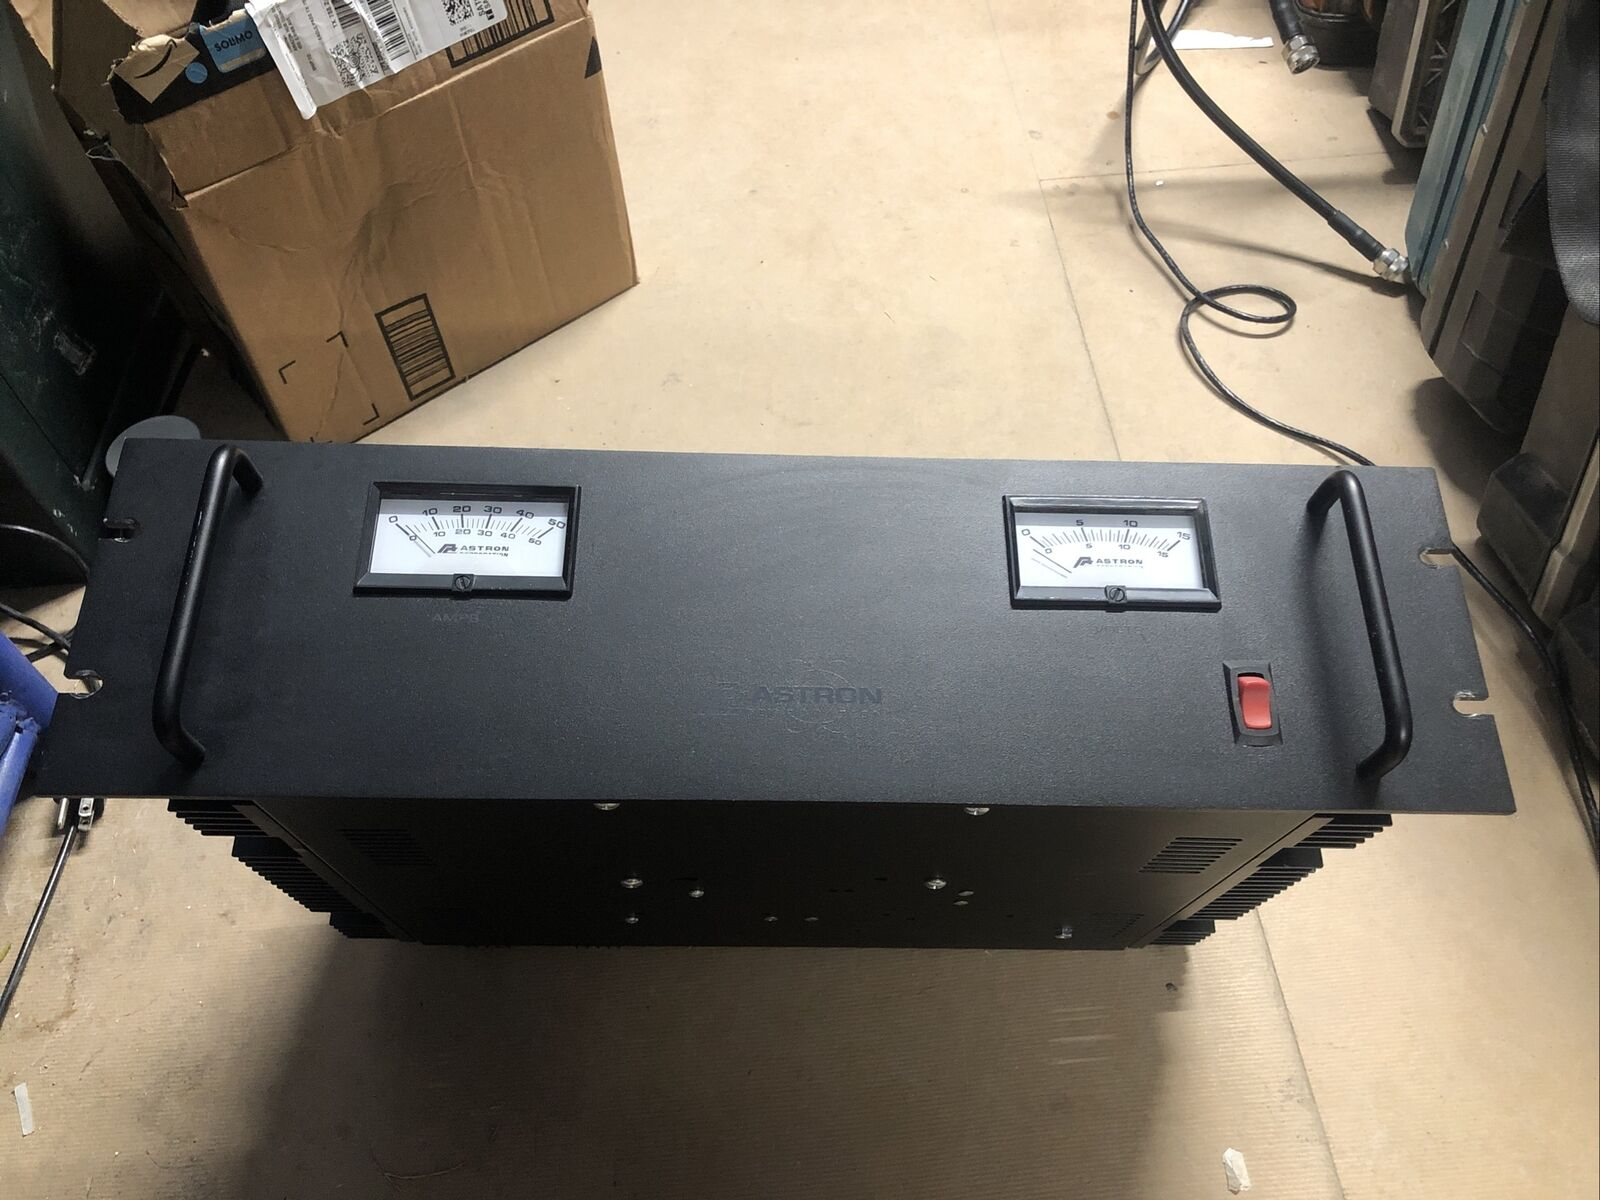 astron 50 amp power supply Battery Backup Connections.  Option. Buy it now for 349.00